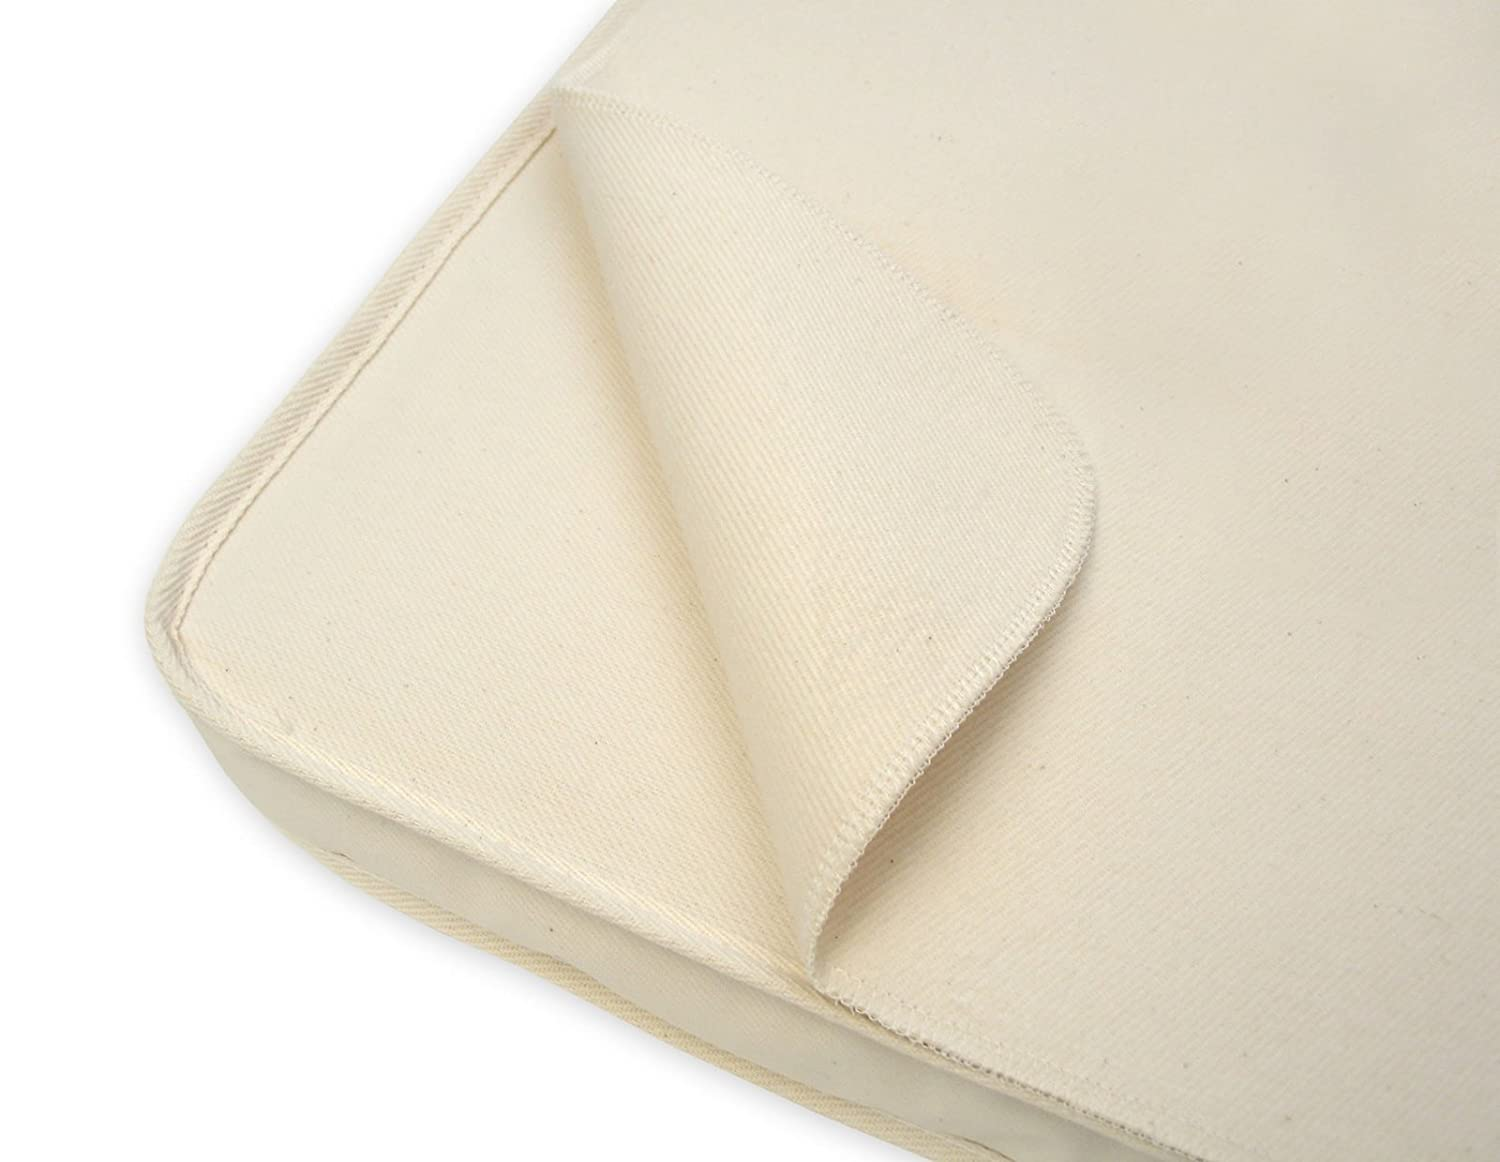 Naturepedic Waterproof Flat Bassinet Pad, 15x30 PB62W GN-O9A4-HPNC